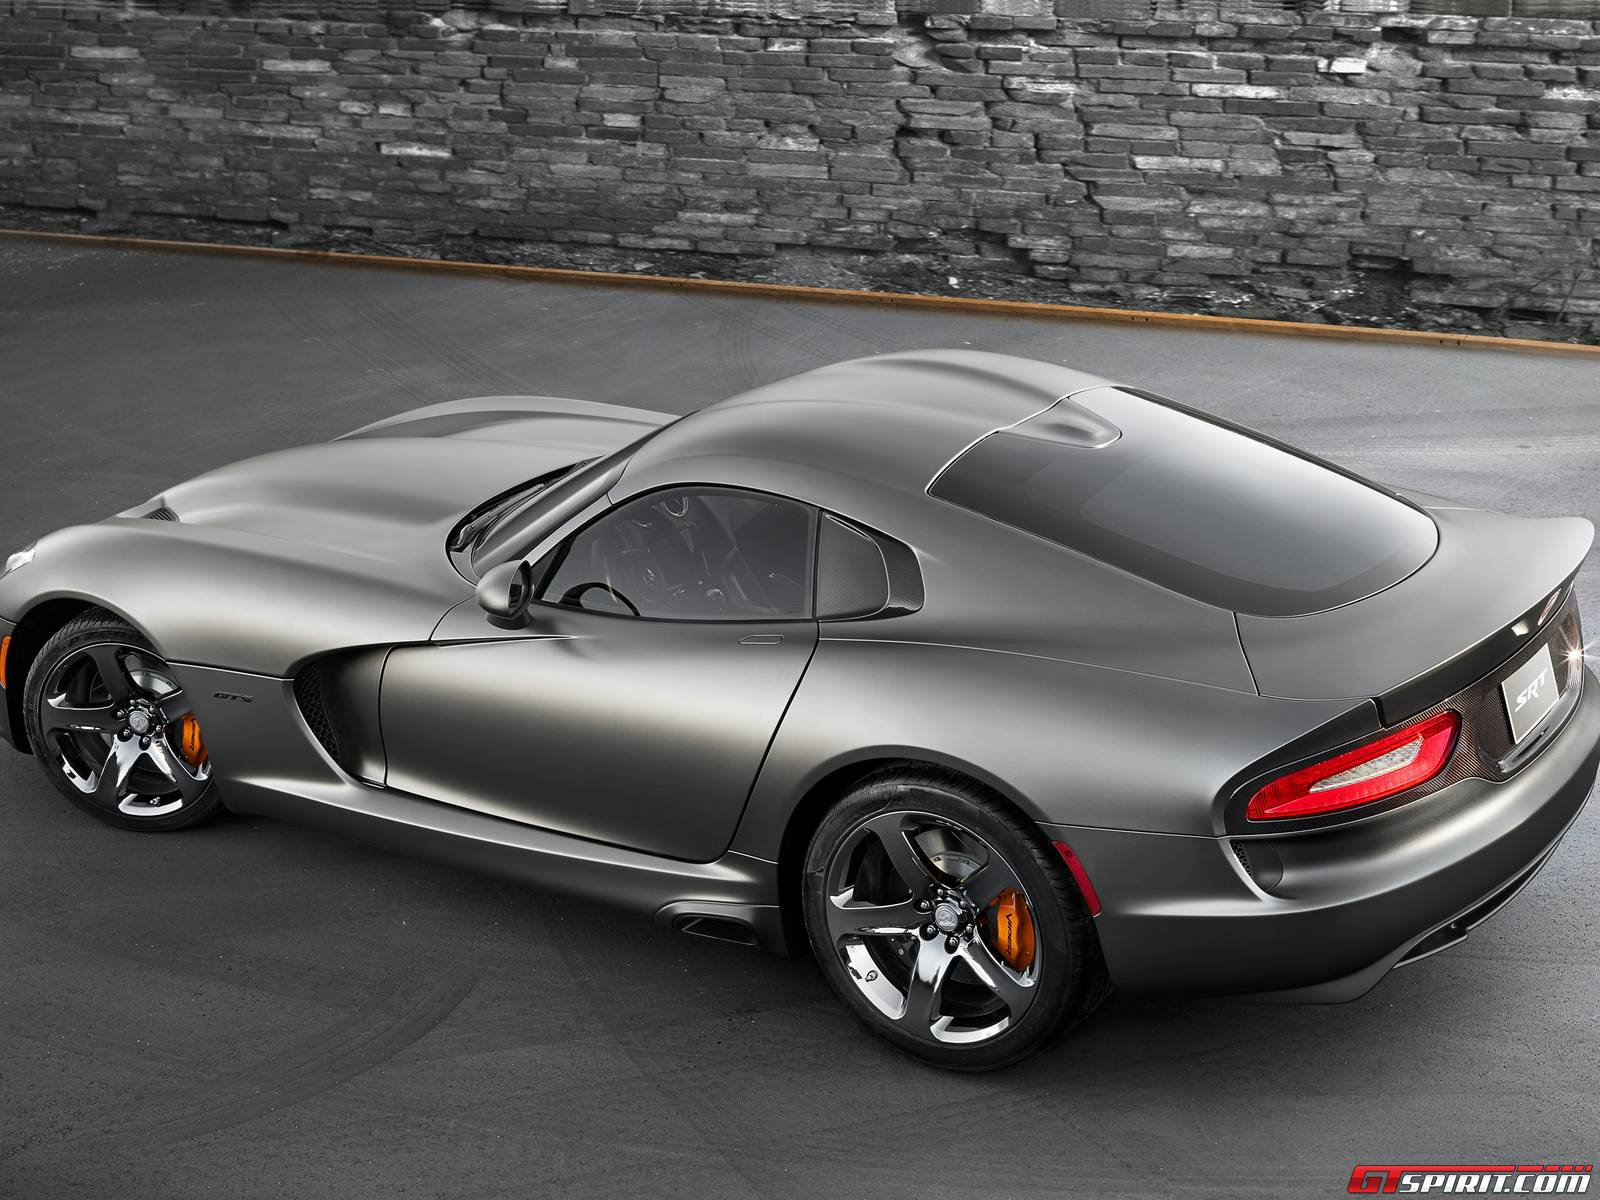 Captivating 2014 SRT Viper Anodized Carbon Special Edition